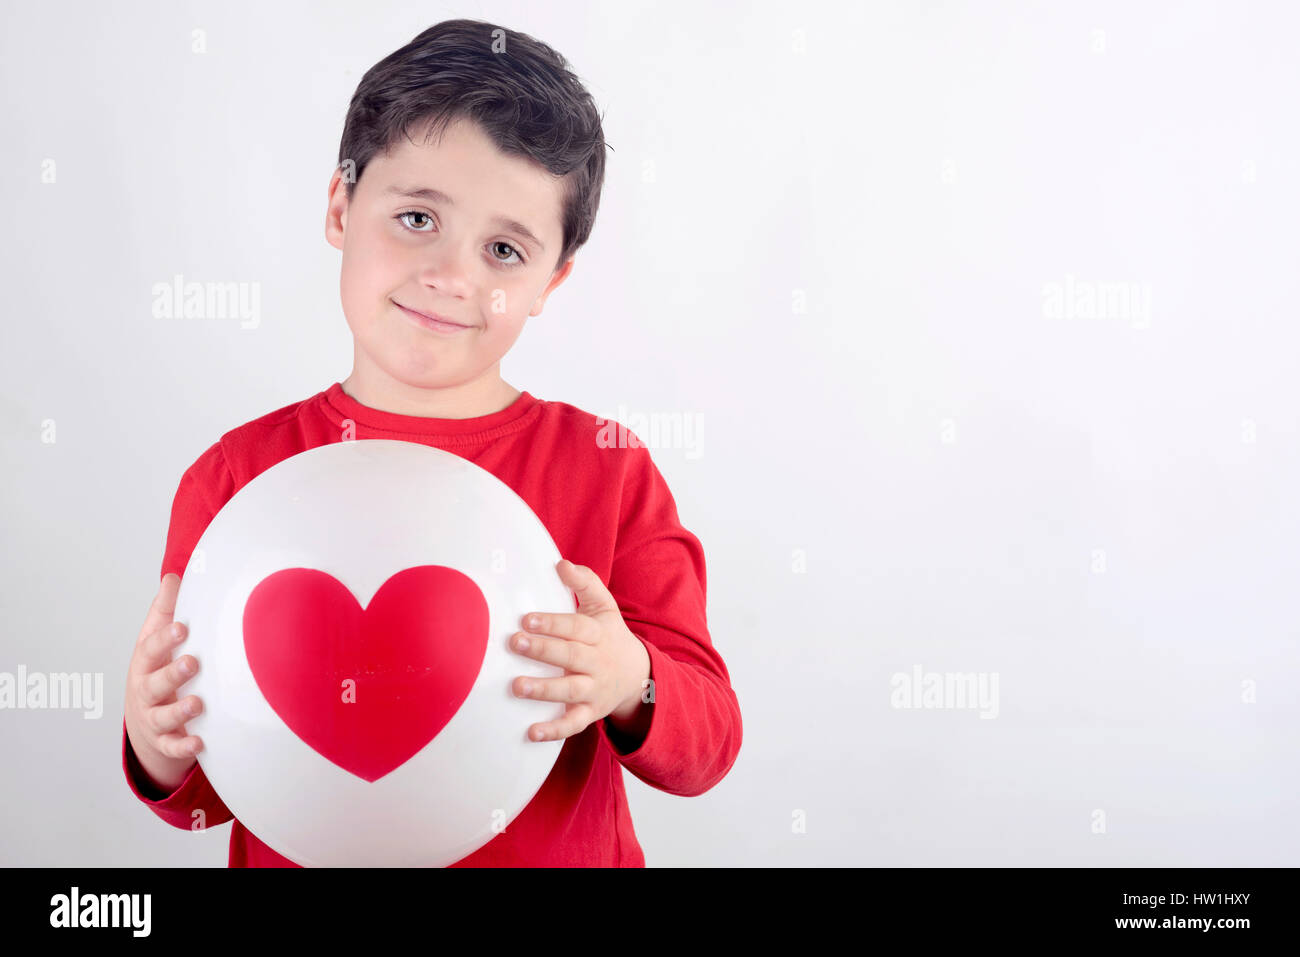 Smiling child with a heart - Stock Image